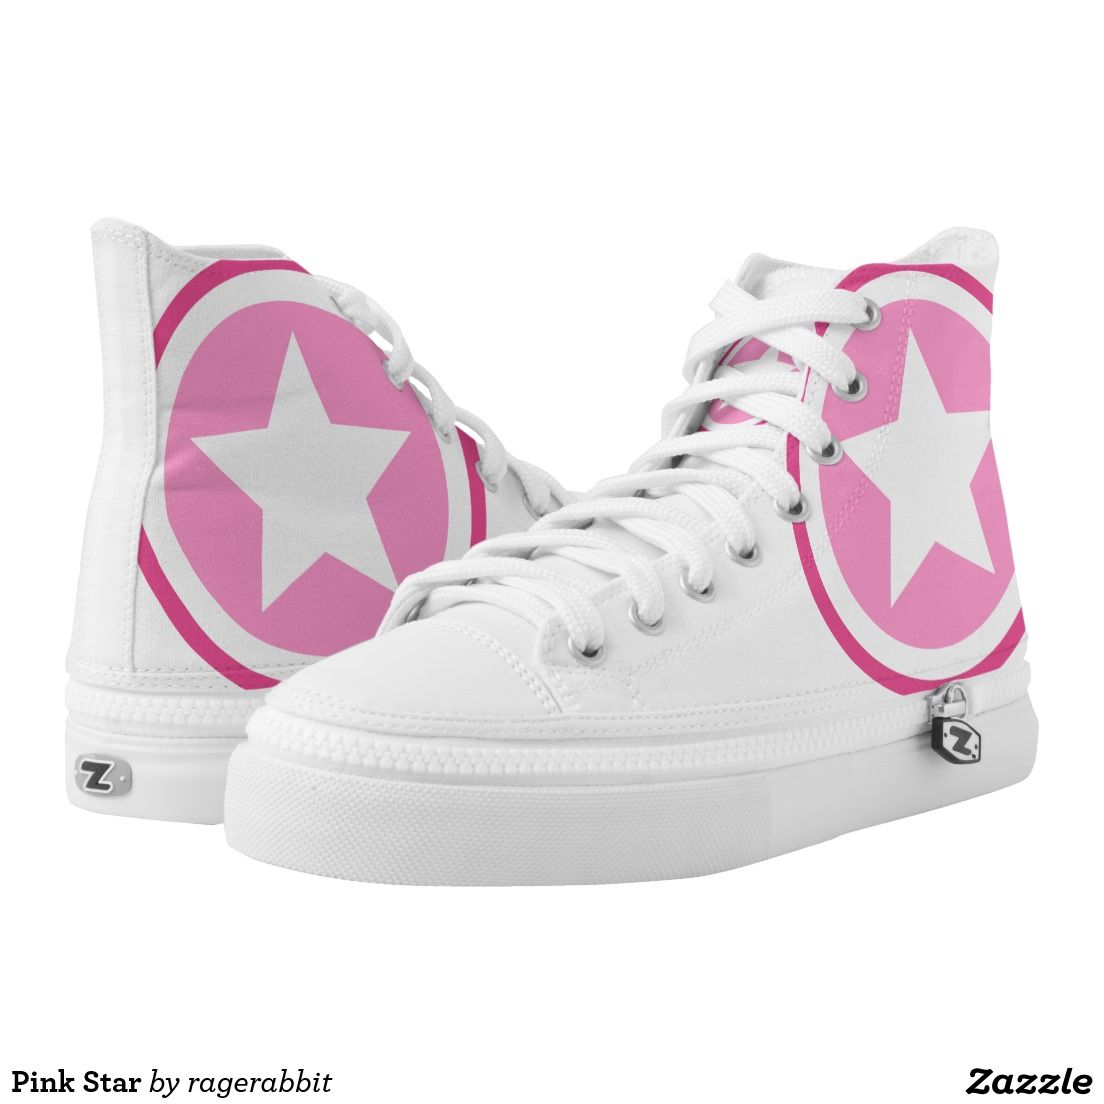 Pink Star Printed Shoes